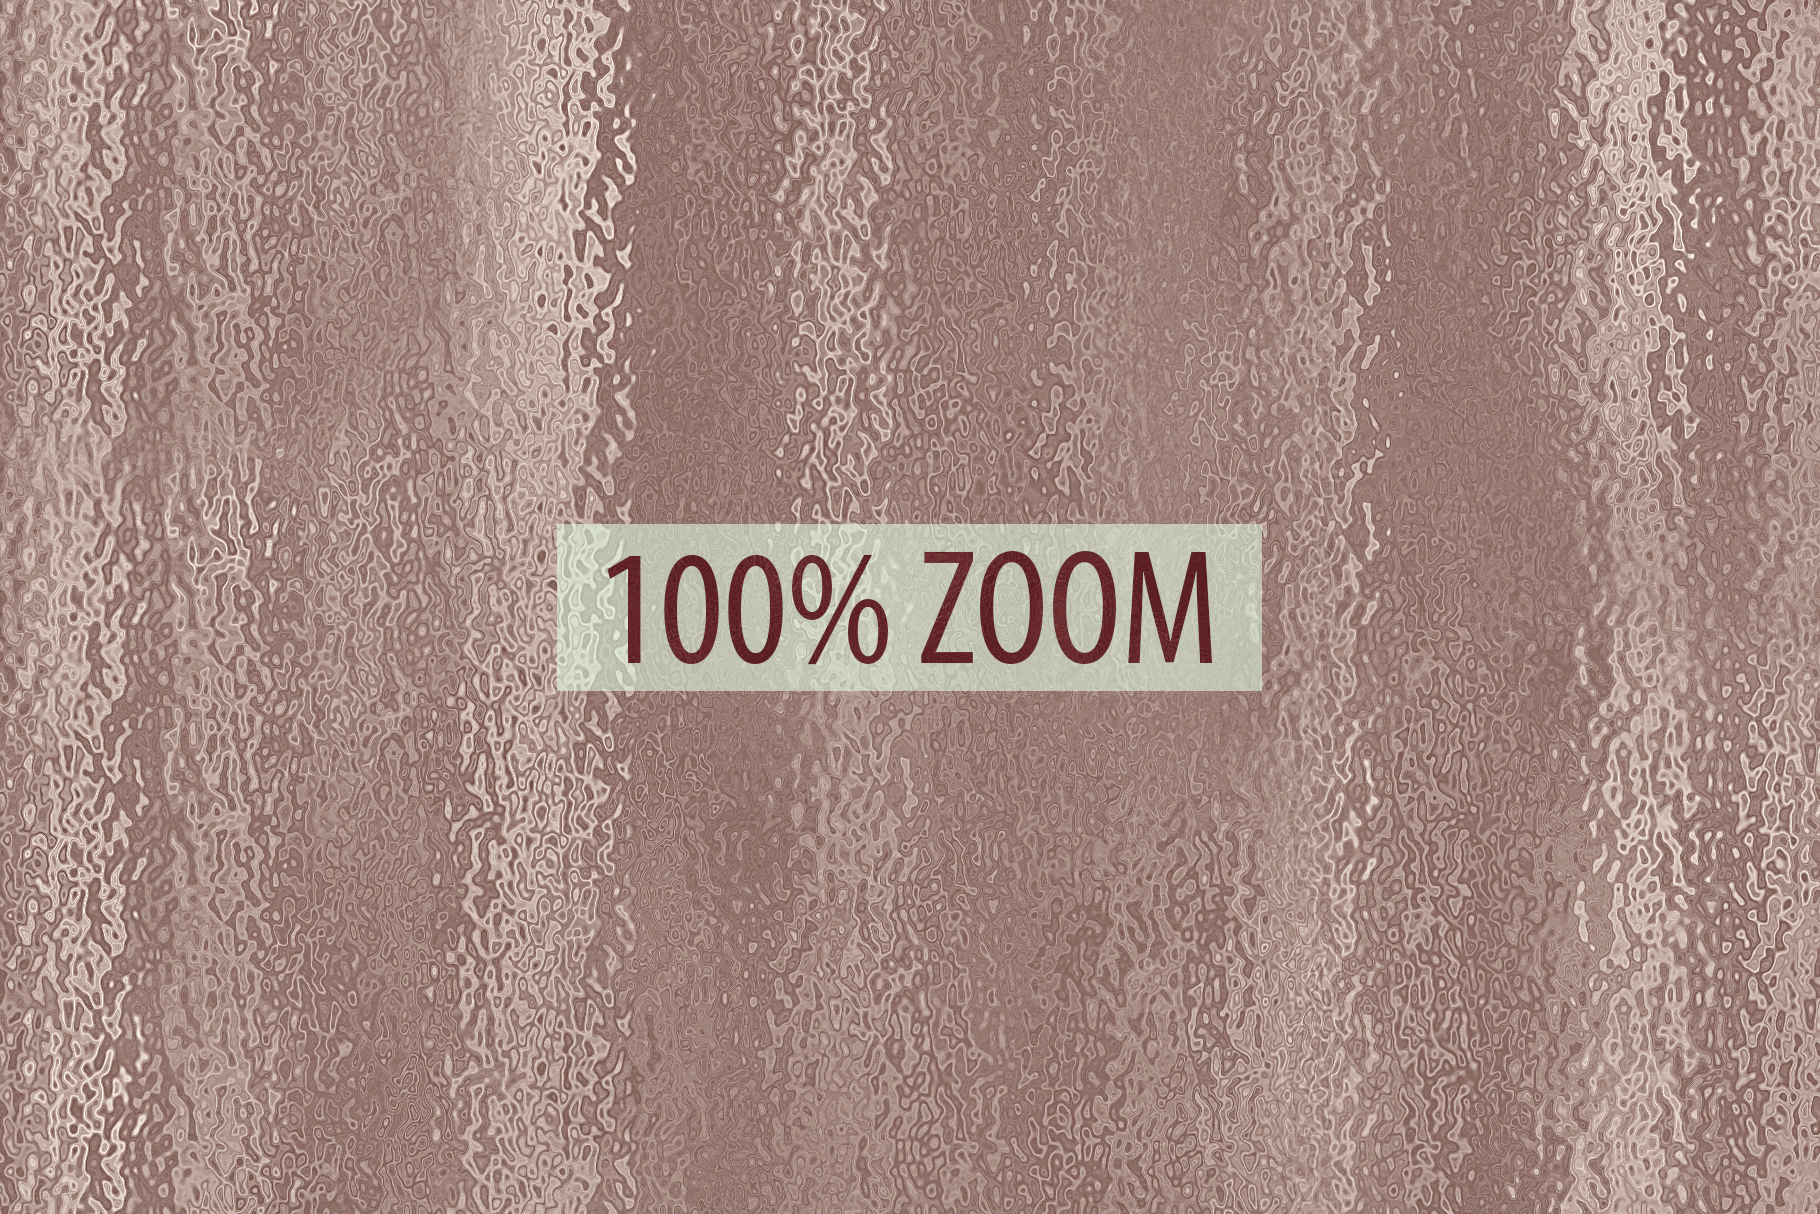 Copper Foil Textures - 10 Seamless Digital Papers example image 14